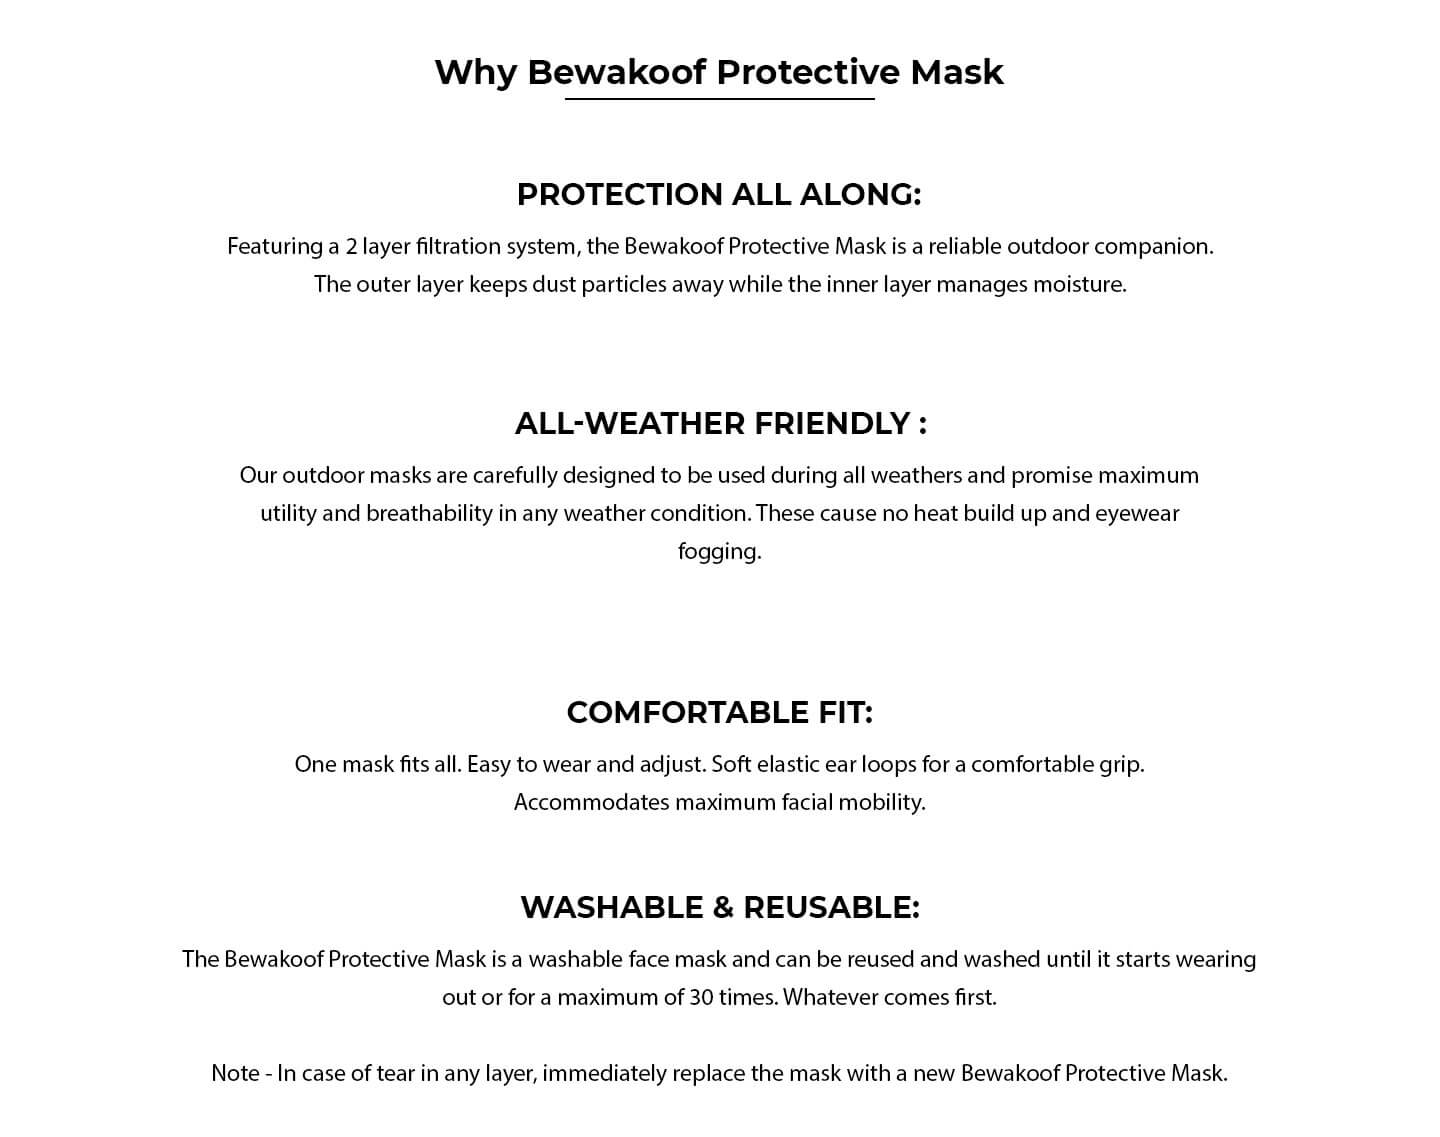 2-Layer Everyday Protective Mask - Pack of 3 ( Be Kind! Stay Away! Stay Home Everyday Mask ) Description Image Website 1@Bewakoof.com